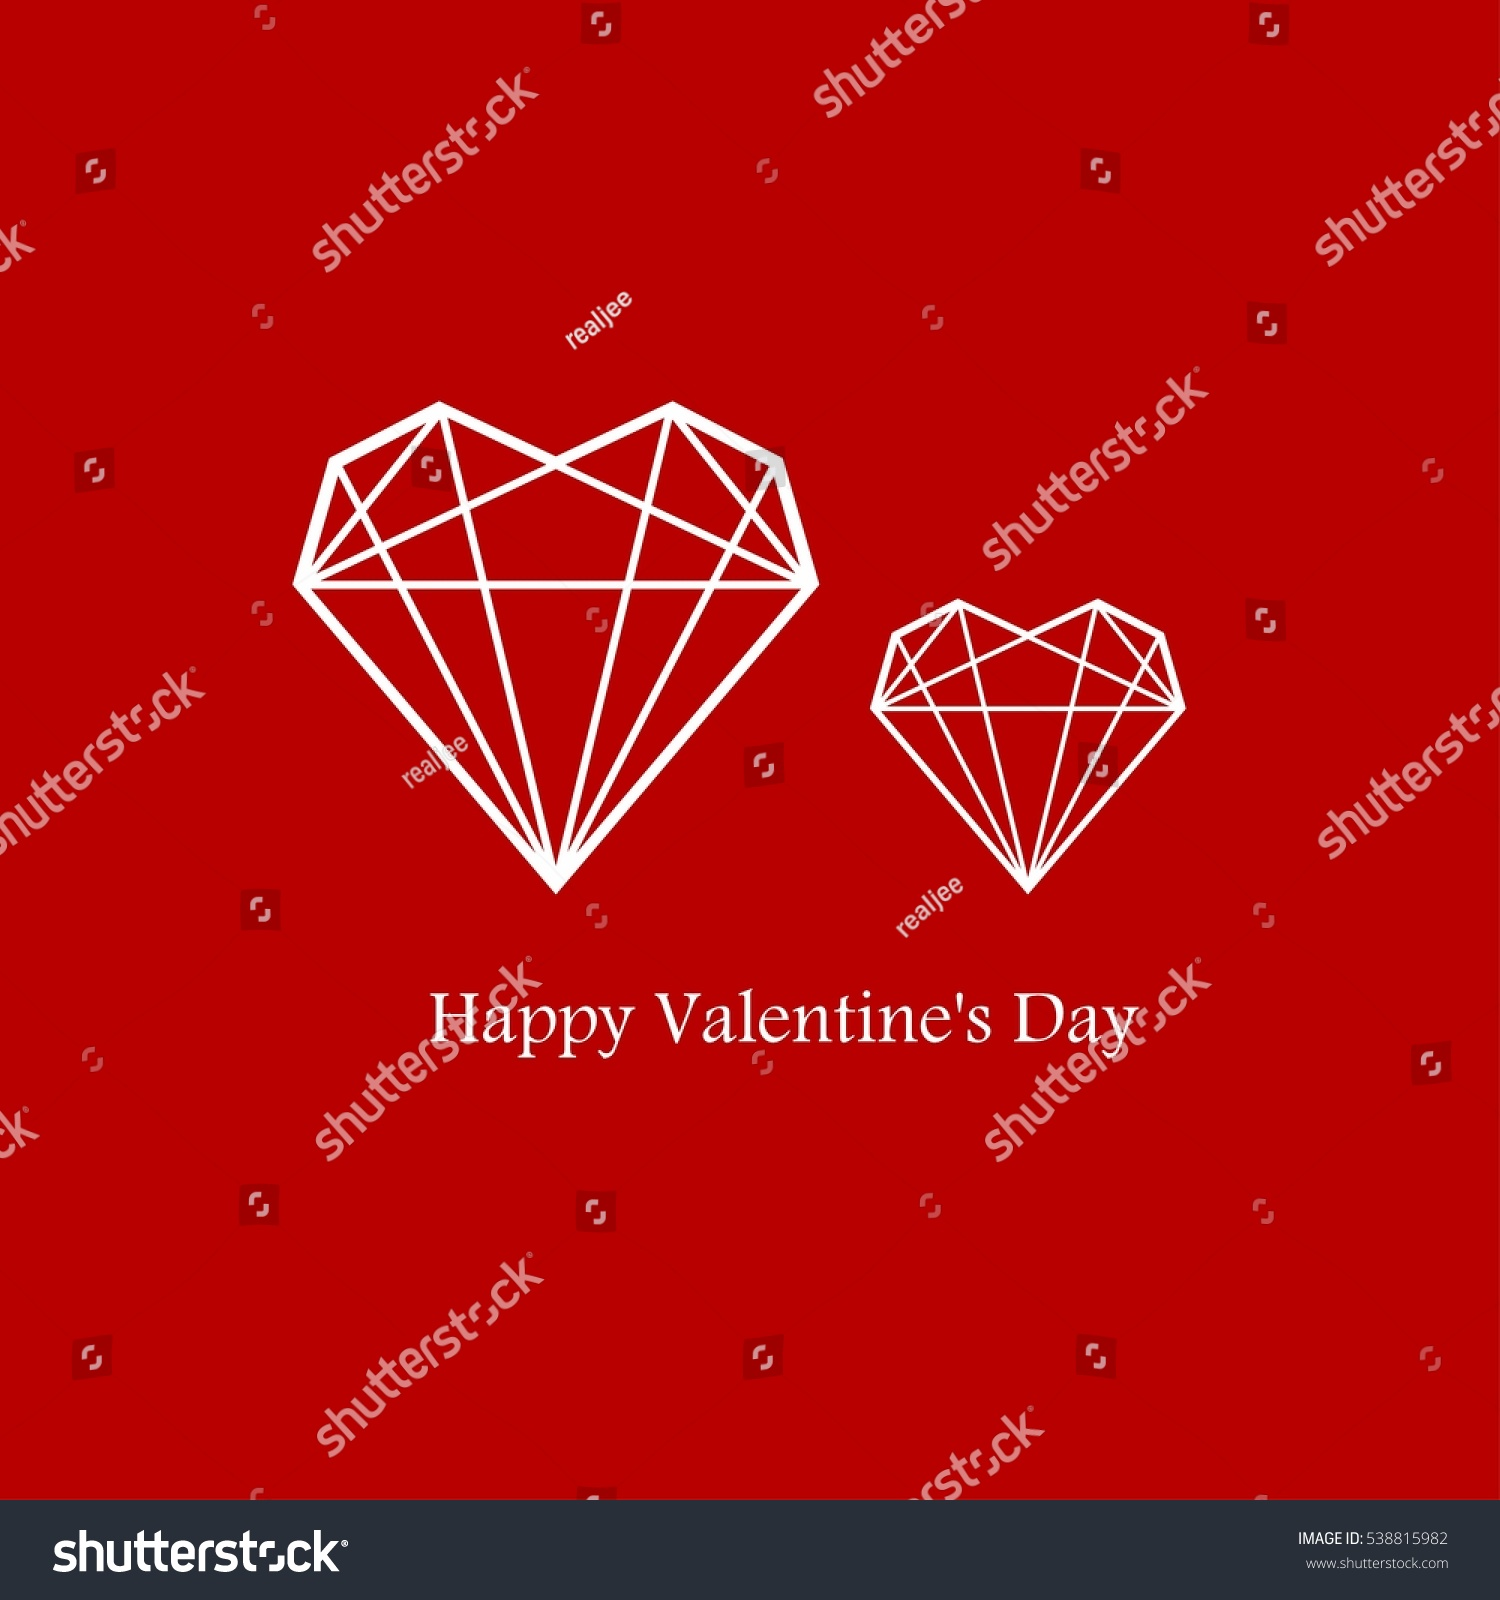 2 Hearts Geometry Shape Valentines Day Stock Vector Royalty Free